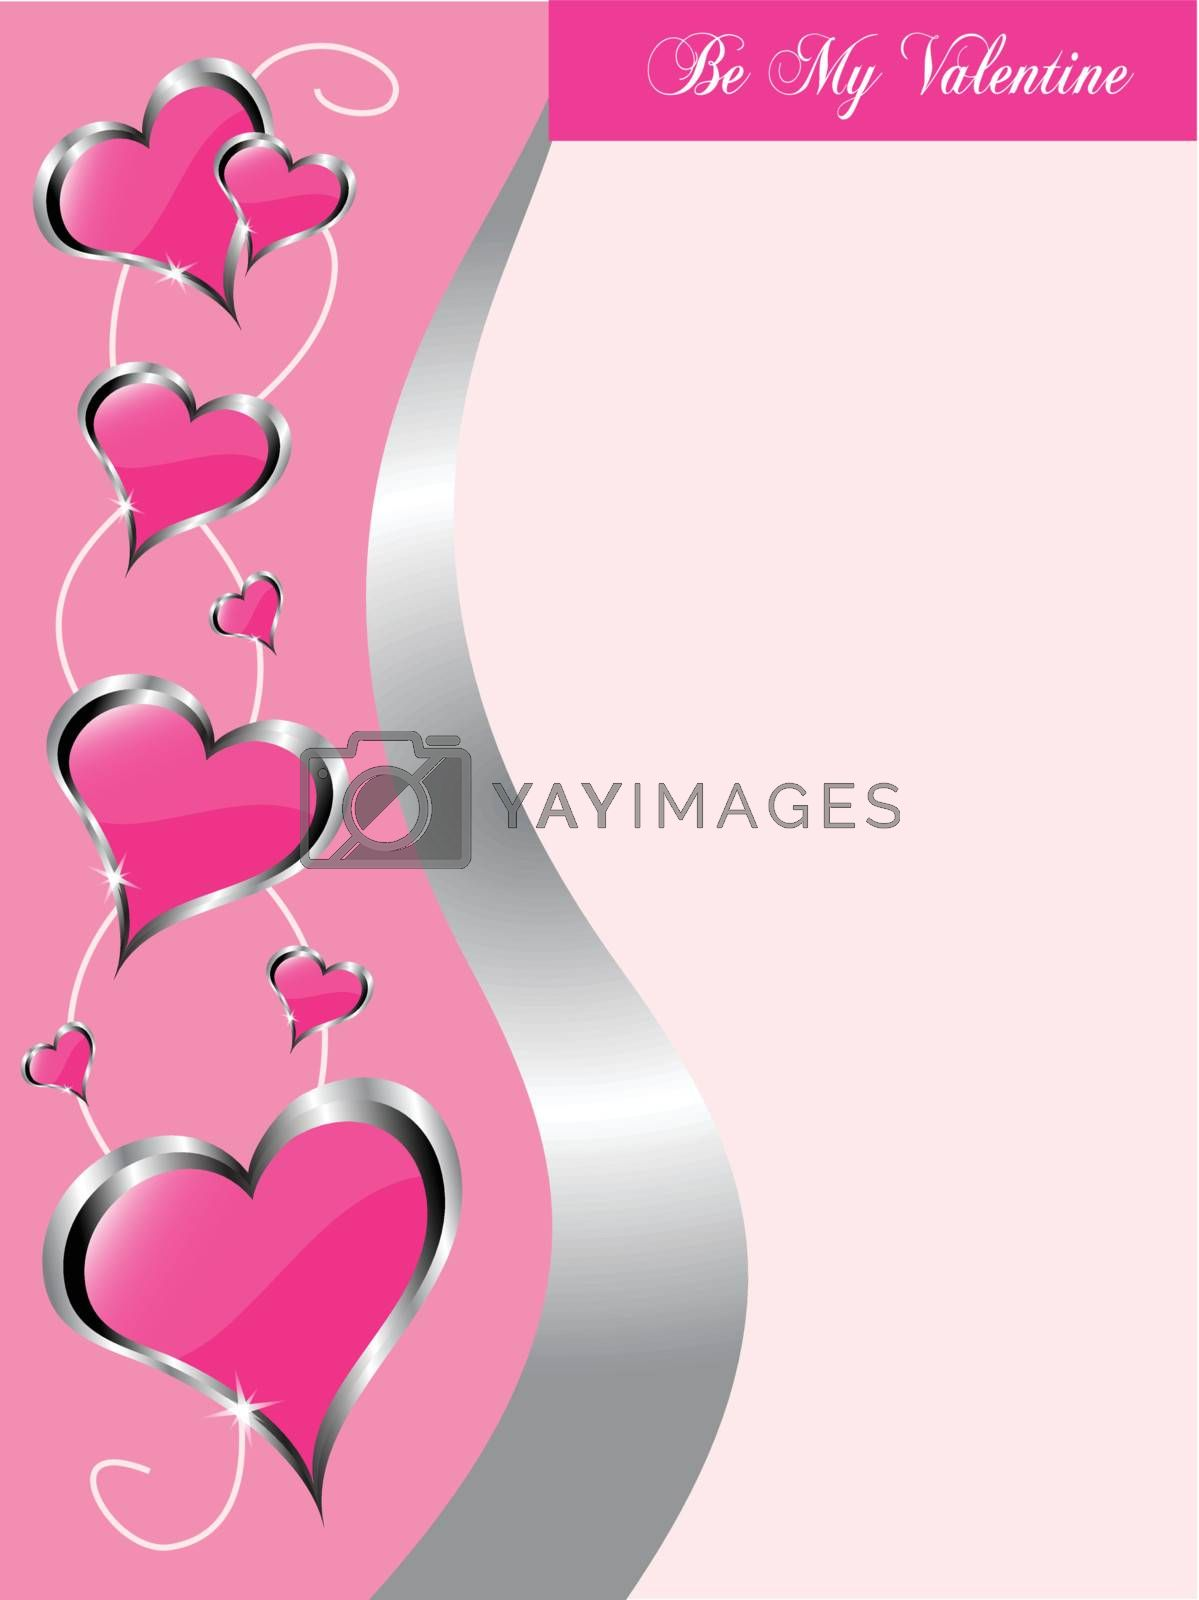 A vector valentines background  with a large hearts on a pink background pattern